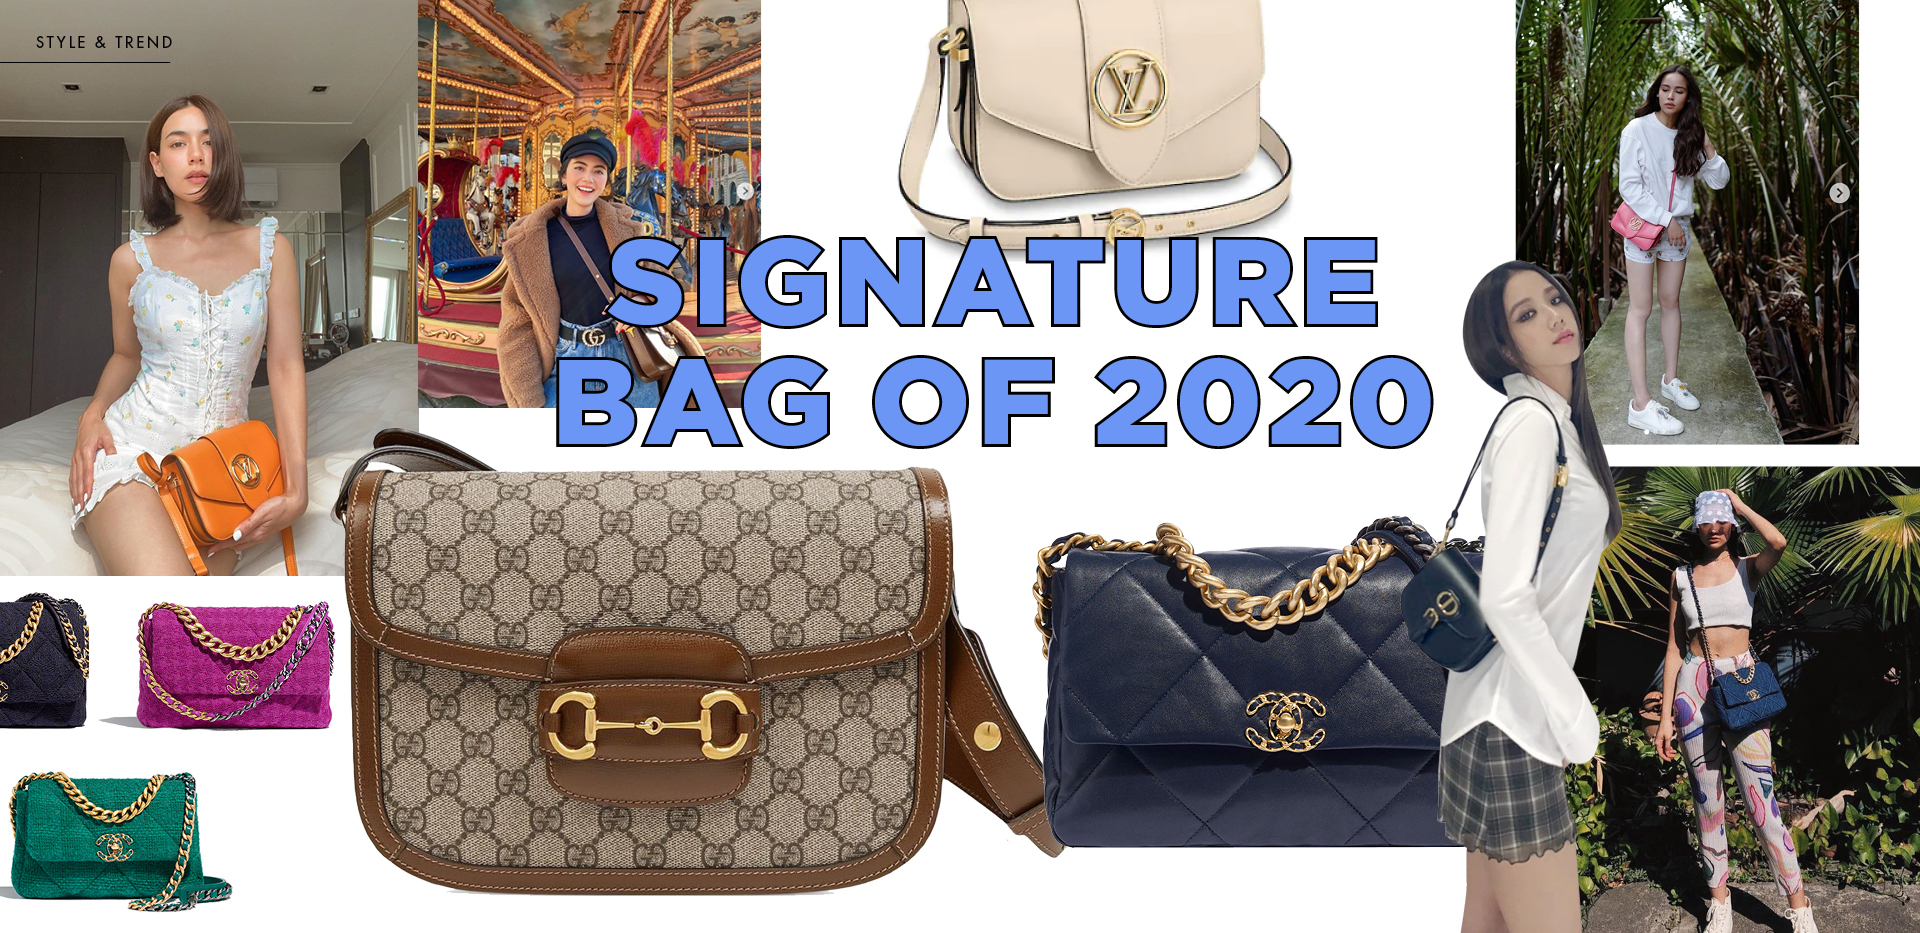 Signature bag of 2020